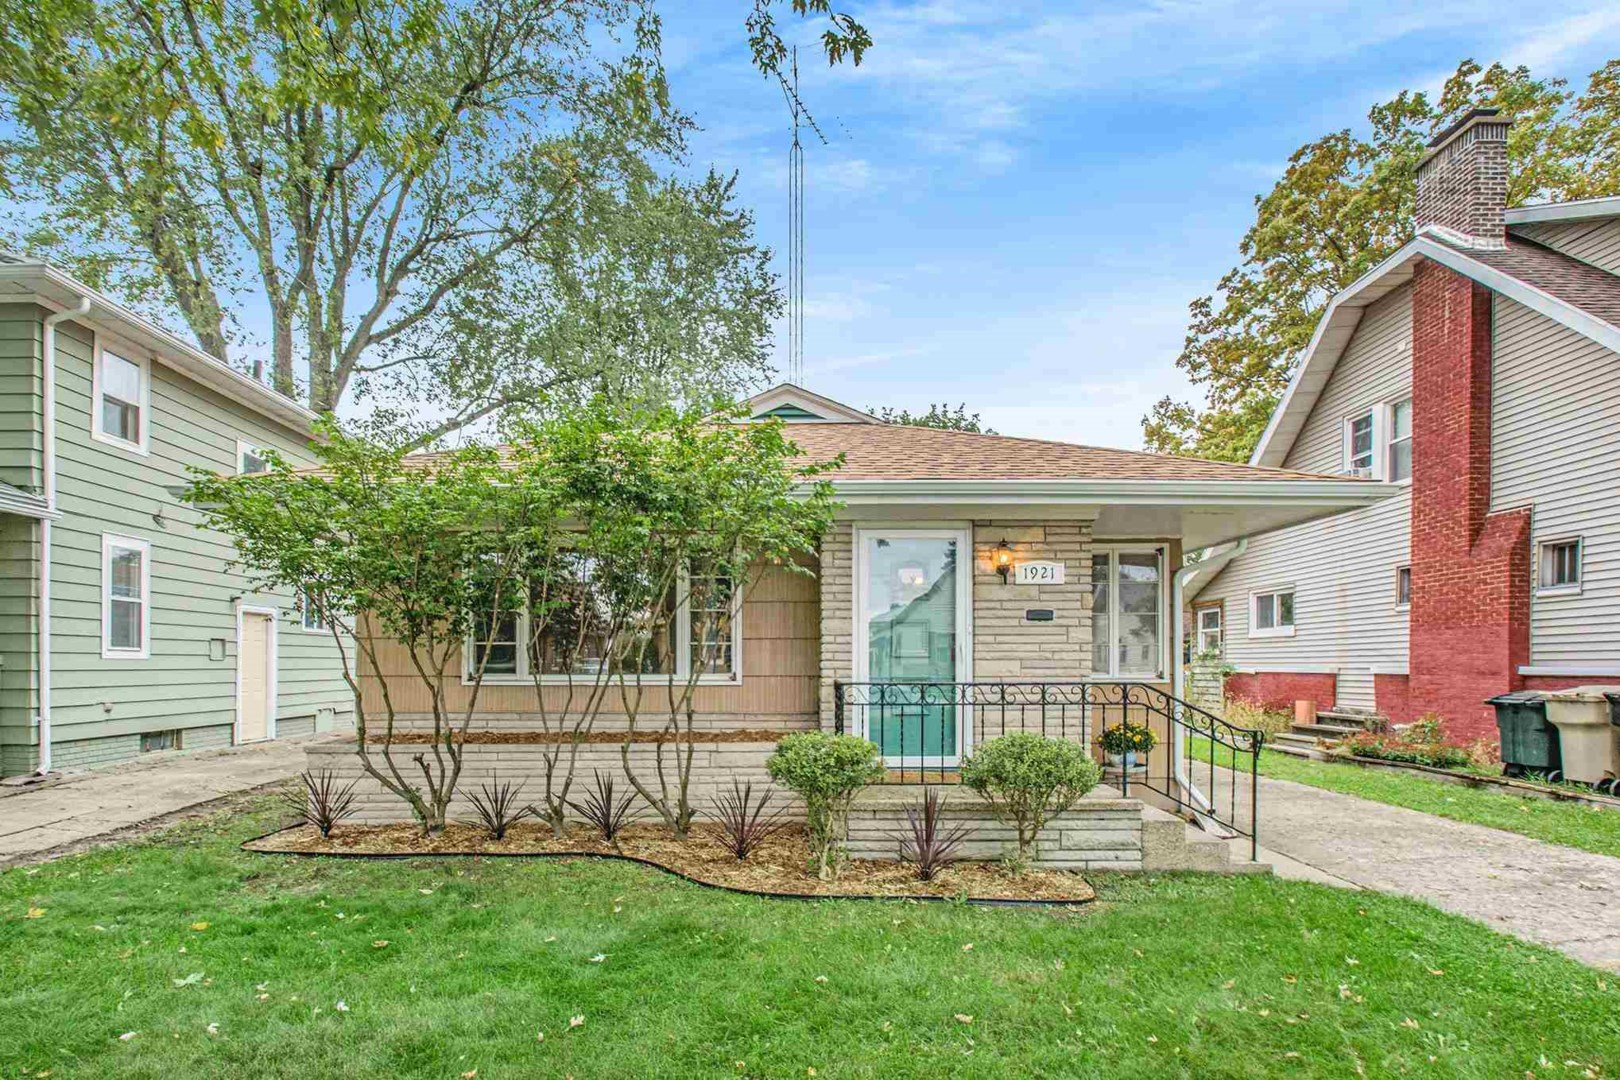 2-Bedroom House In Woodlawn